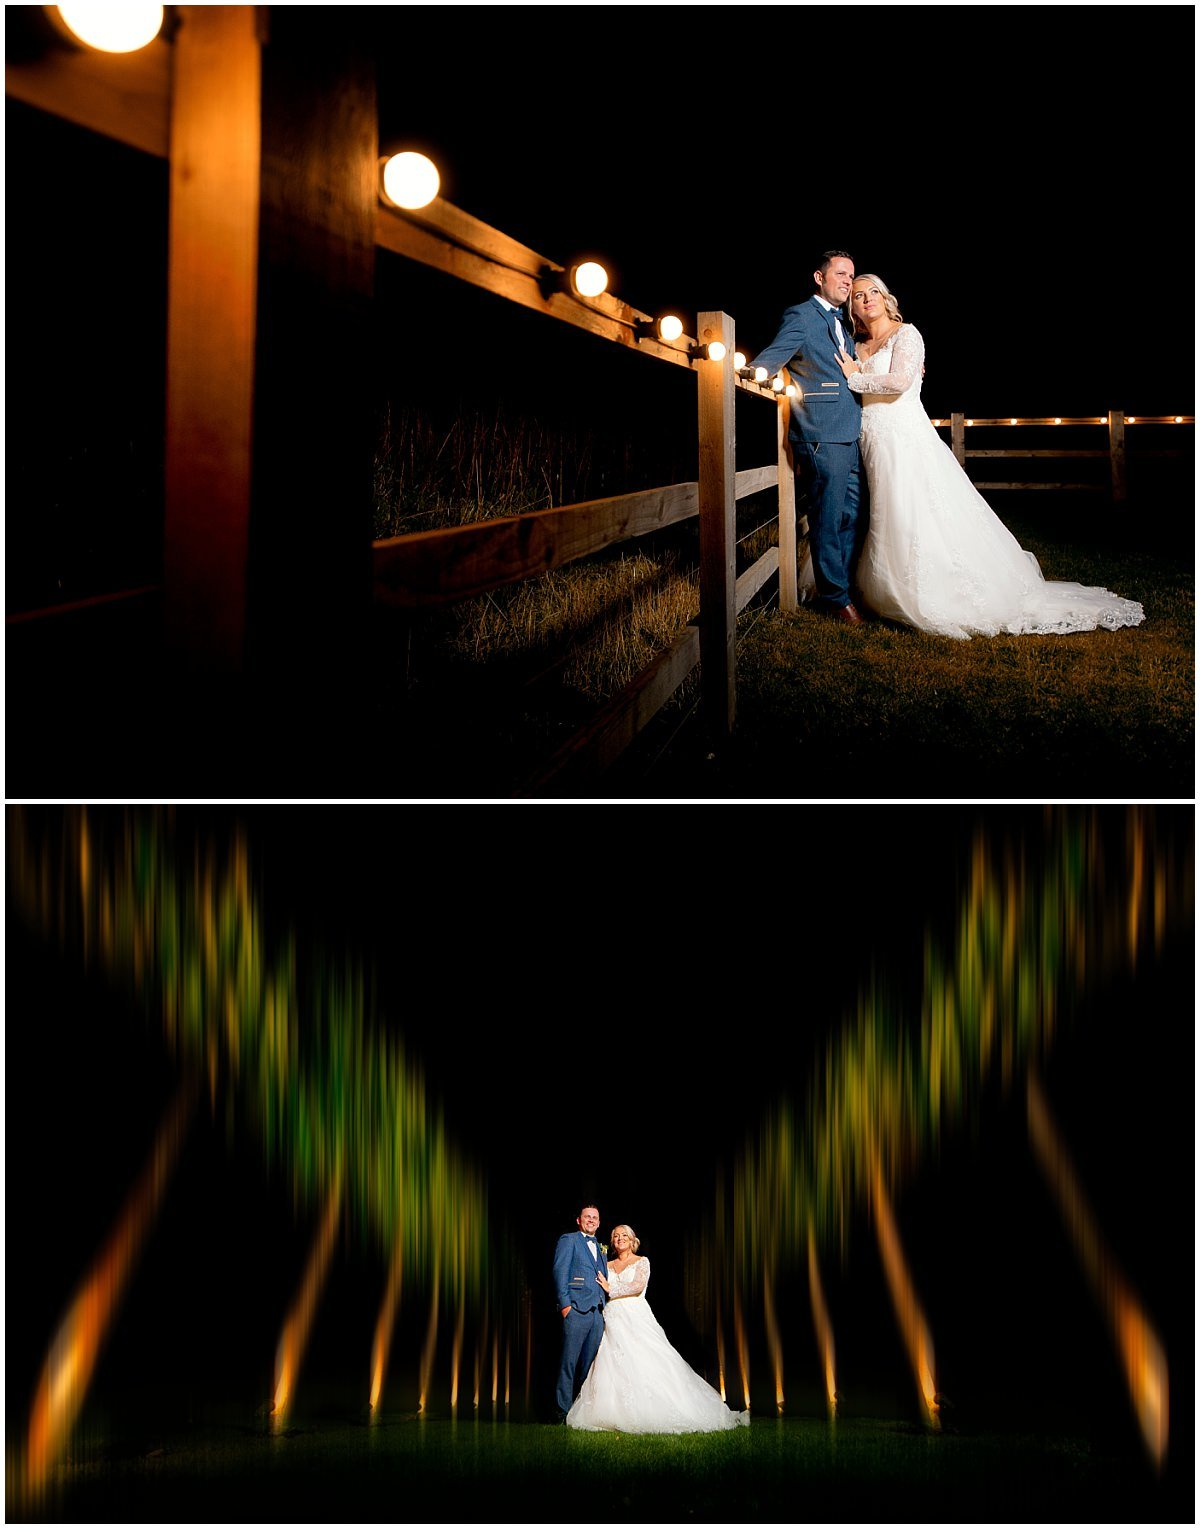 Wedding at Hazel Gap Barn creative night shots